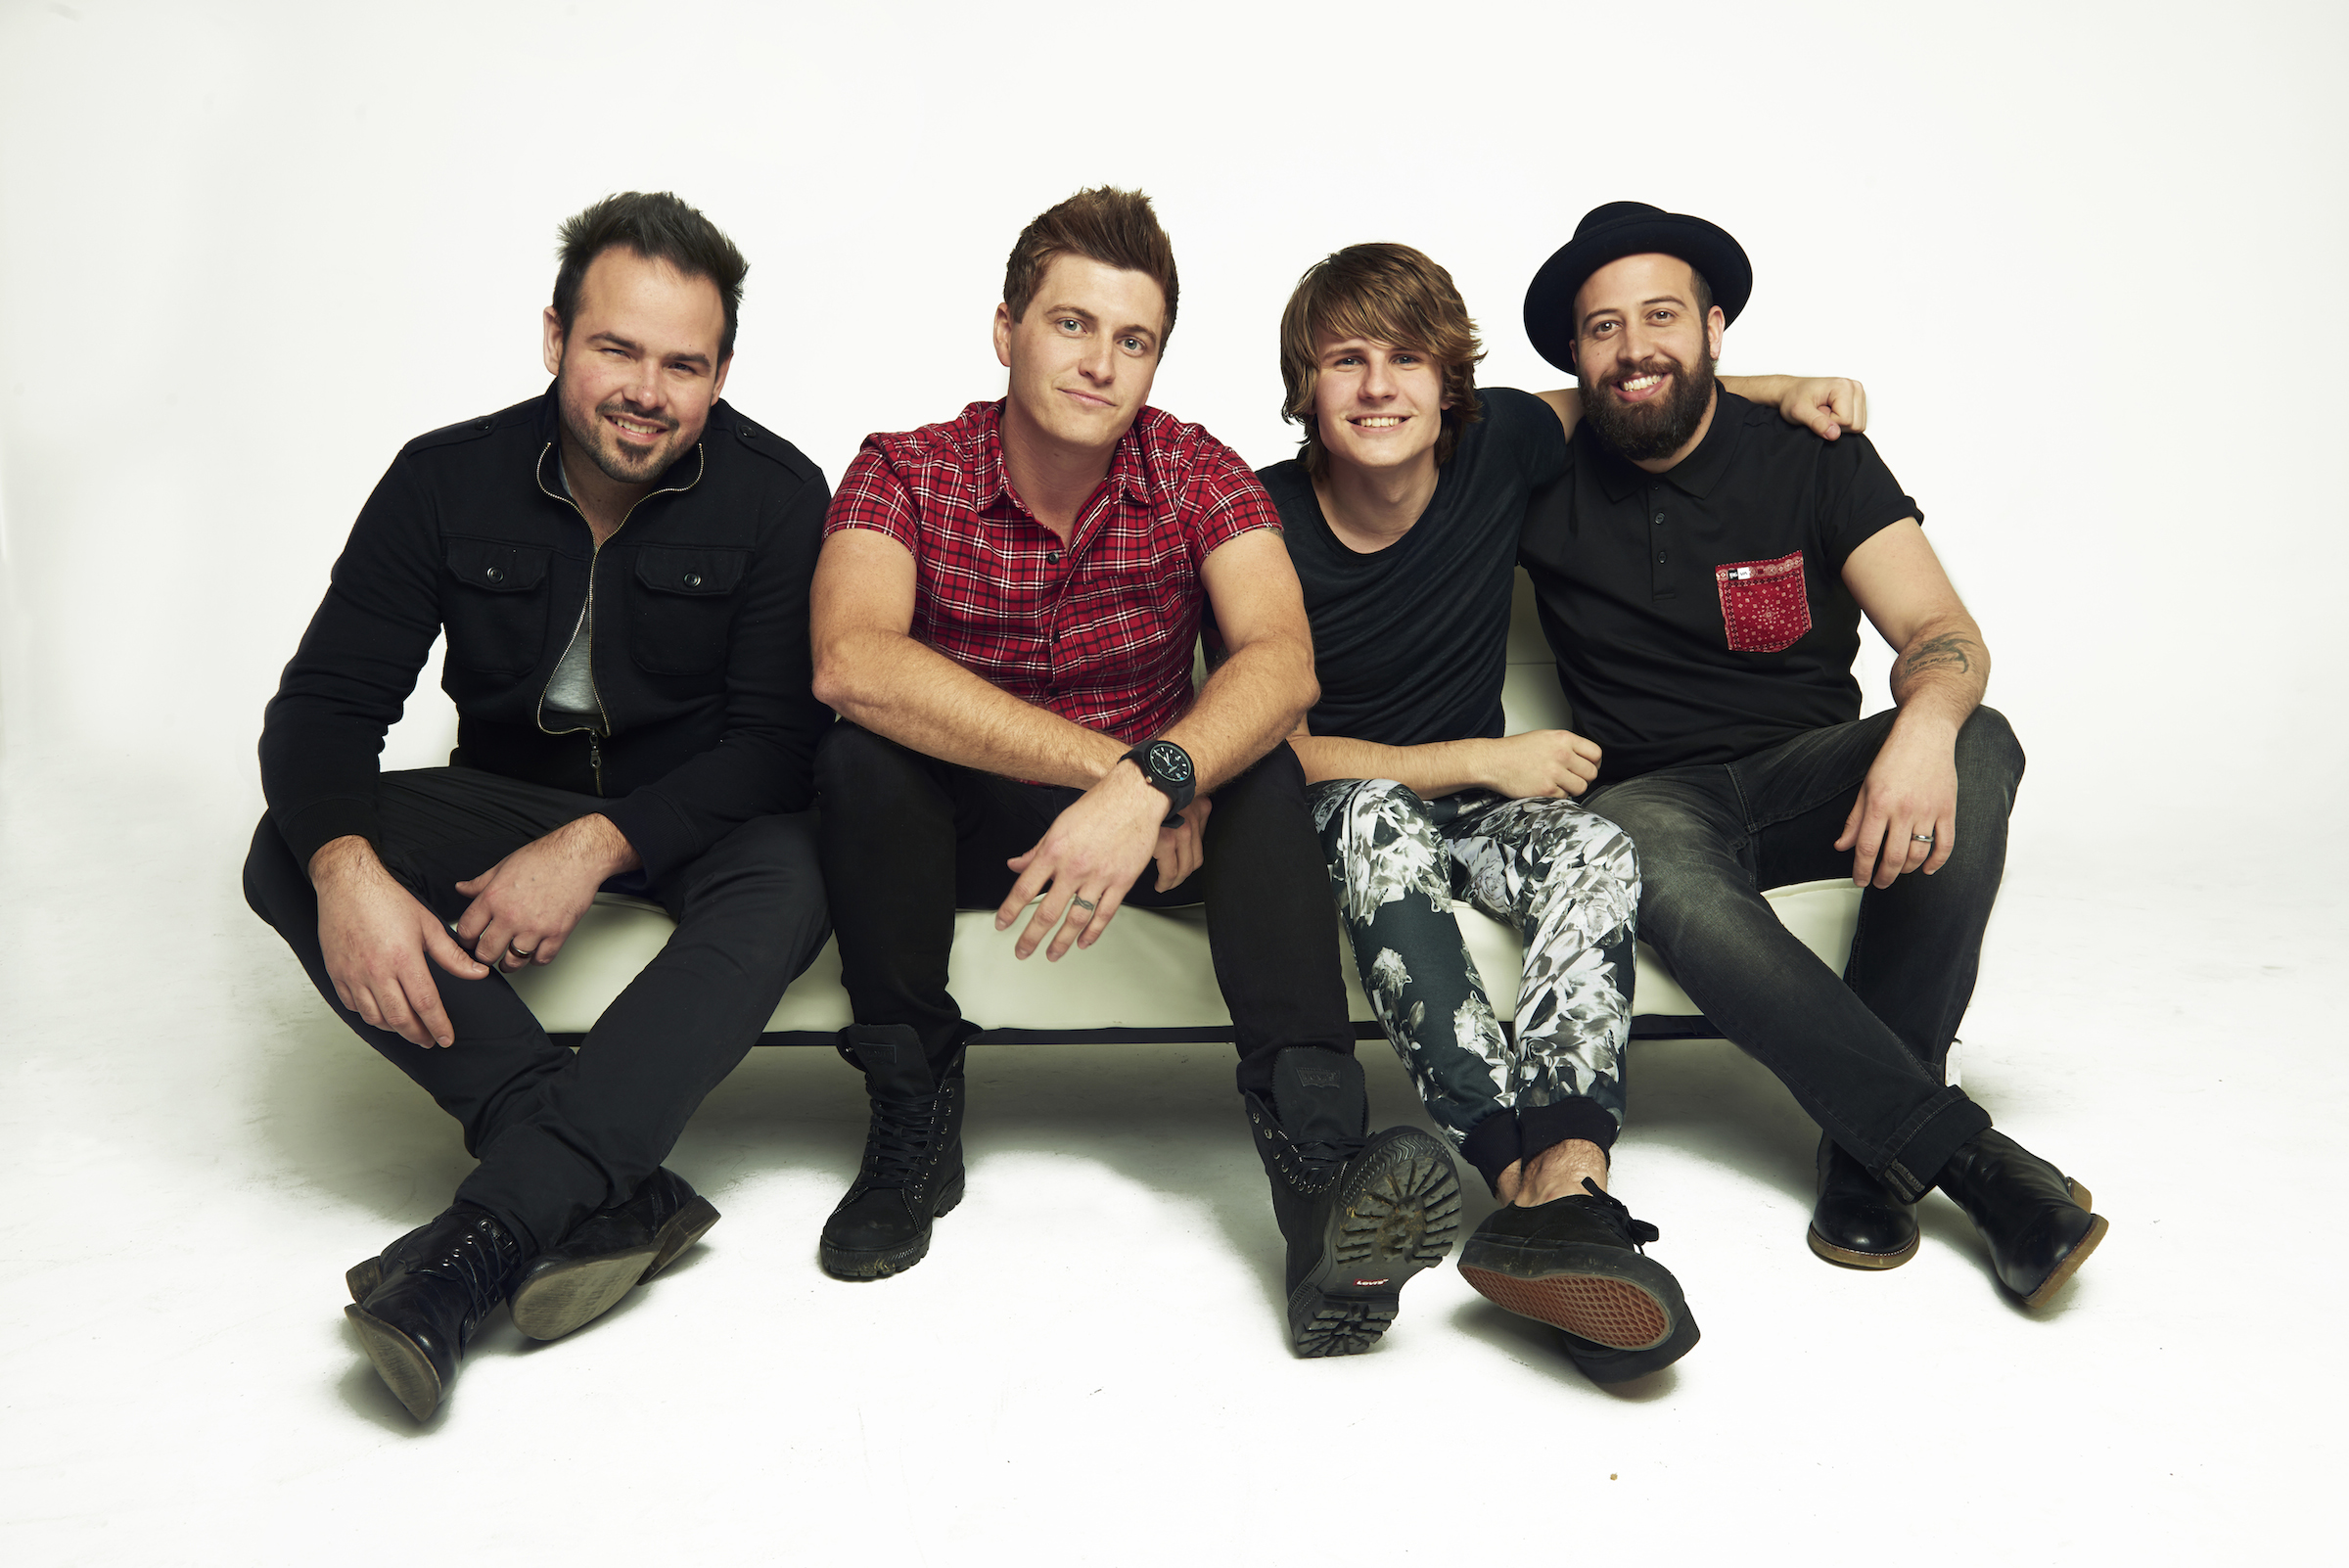 AUDIO ADRENALINE'S 'SOUND OF THE SAINTS' IMPACTING RADIO AS BAND TAKES ROCK & WORSHIP ROADSHOW STAGE